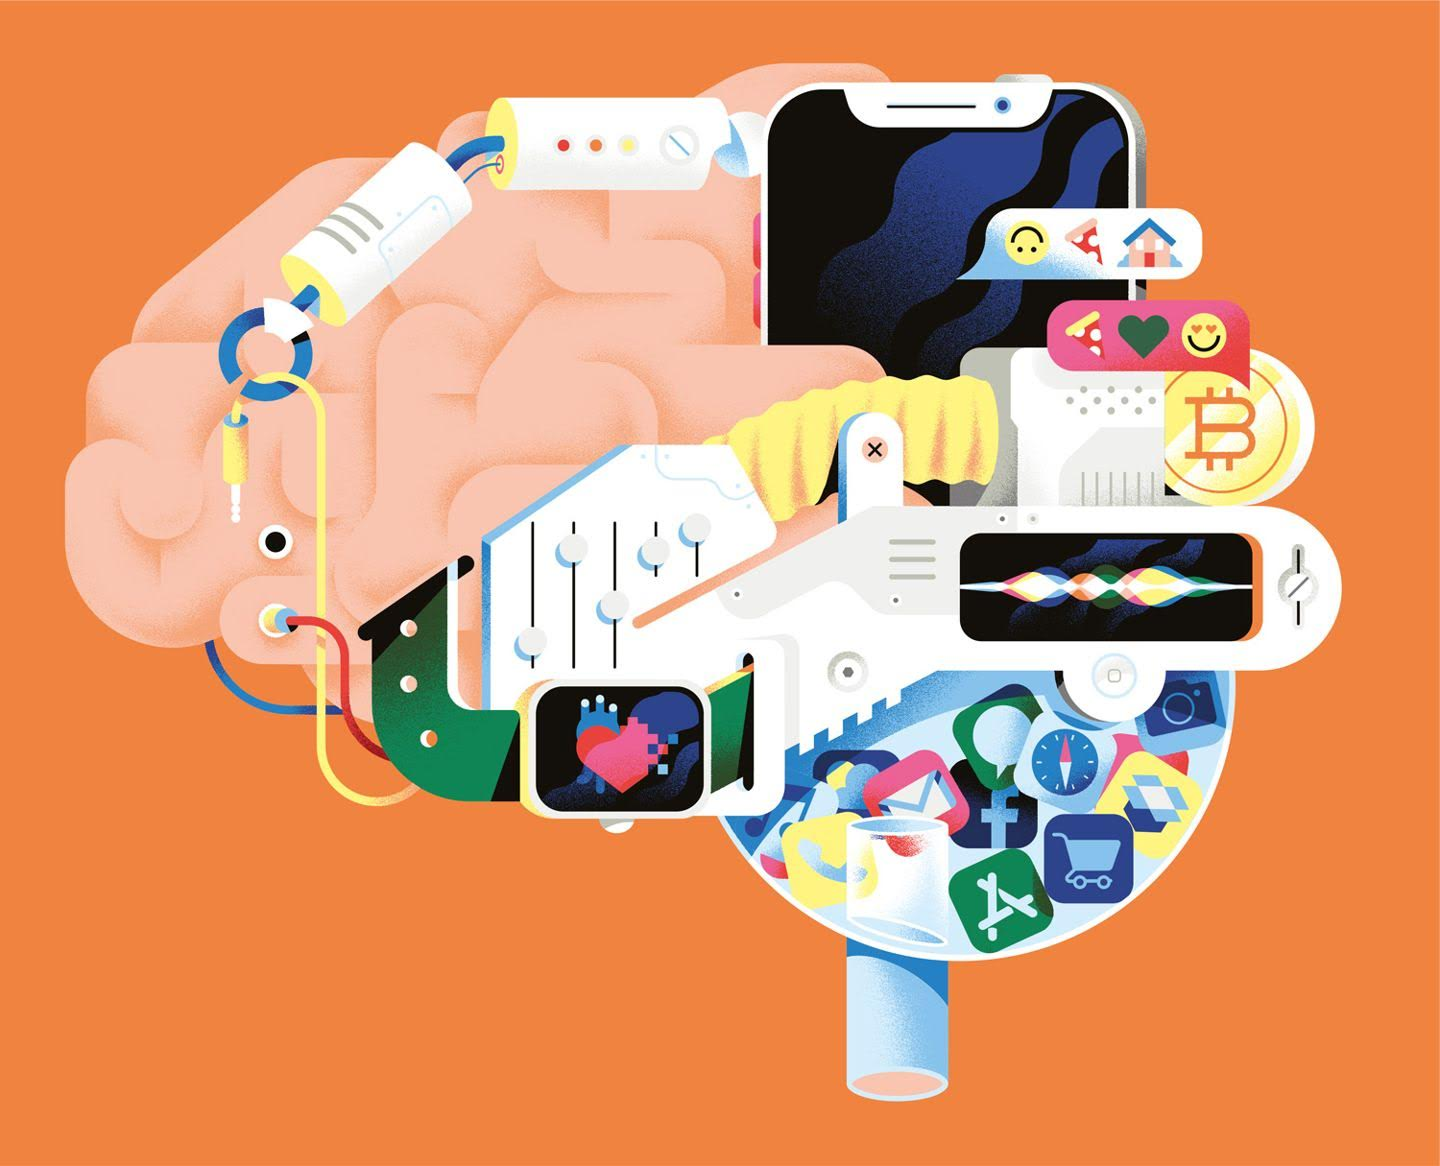 For youngsters born since 2010, social researcher Mark McCrindle says they are growing up surrounded by technology they will regard as part of the hard wiring of normal life. The rest of us will have to adjust.  Illustration Credit: Michele Marconi